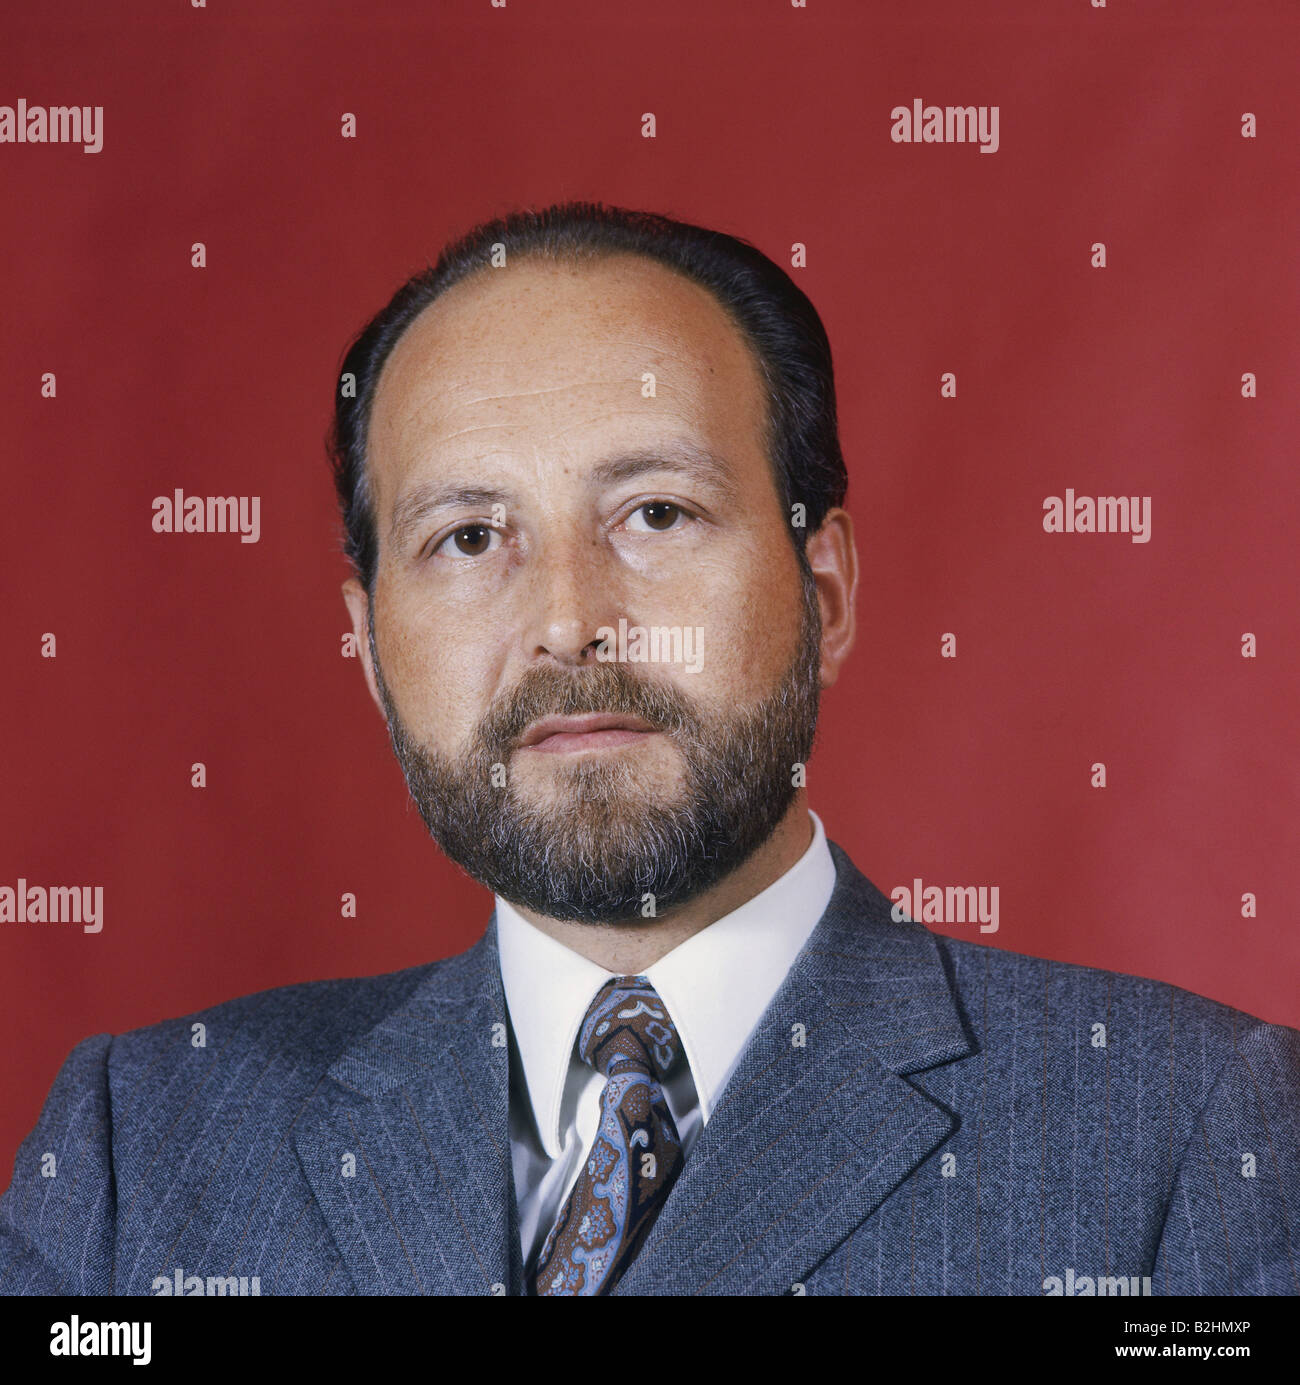 Engelhard, Hans Arnold, 16.9.1934 - 11.3.2008, homme politique allemand (FDP), portrait, 1972, Additional-Rights Photo Stock